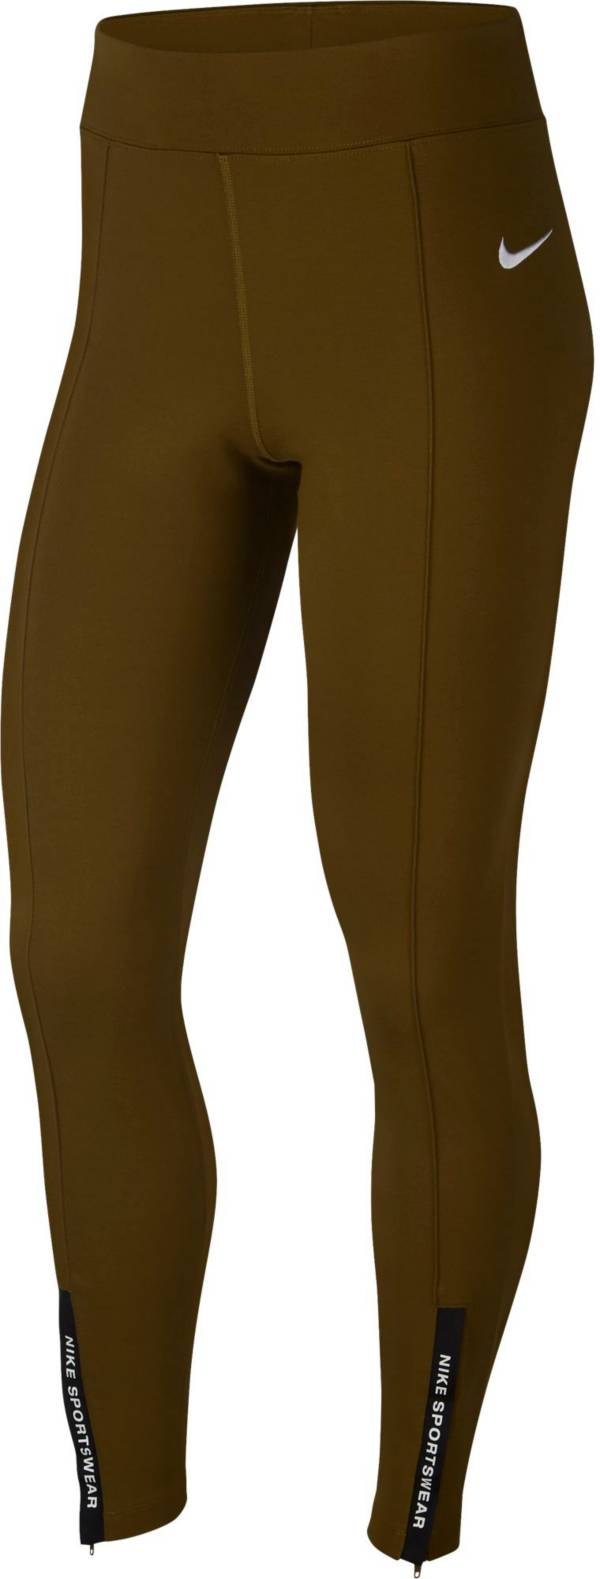 Nike Women's Sportswear Leg-A-See Zip Leggings product image